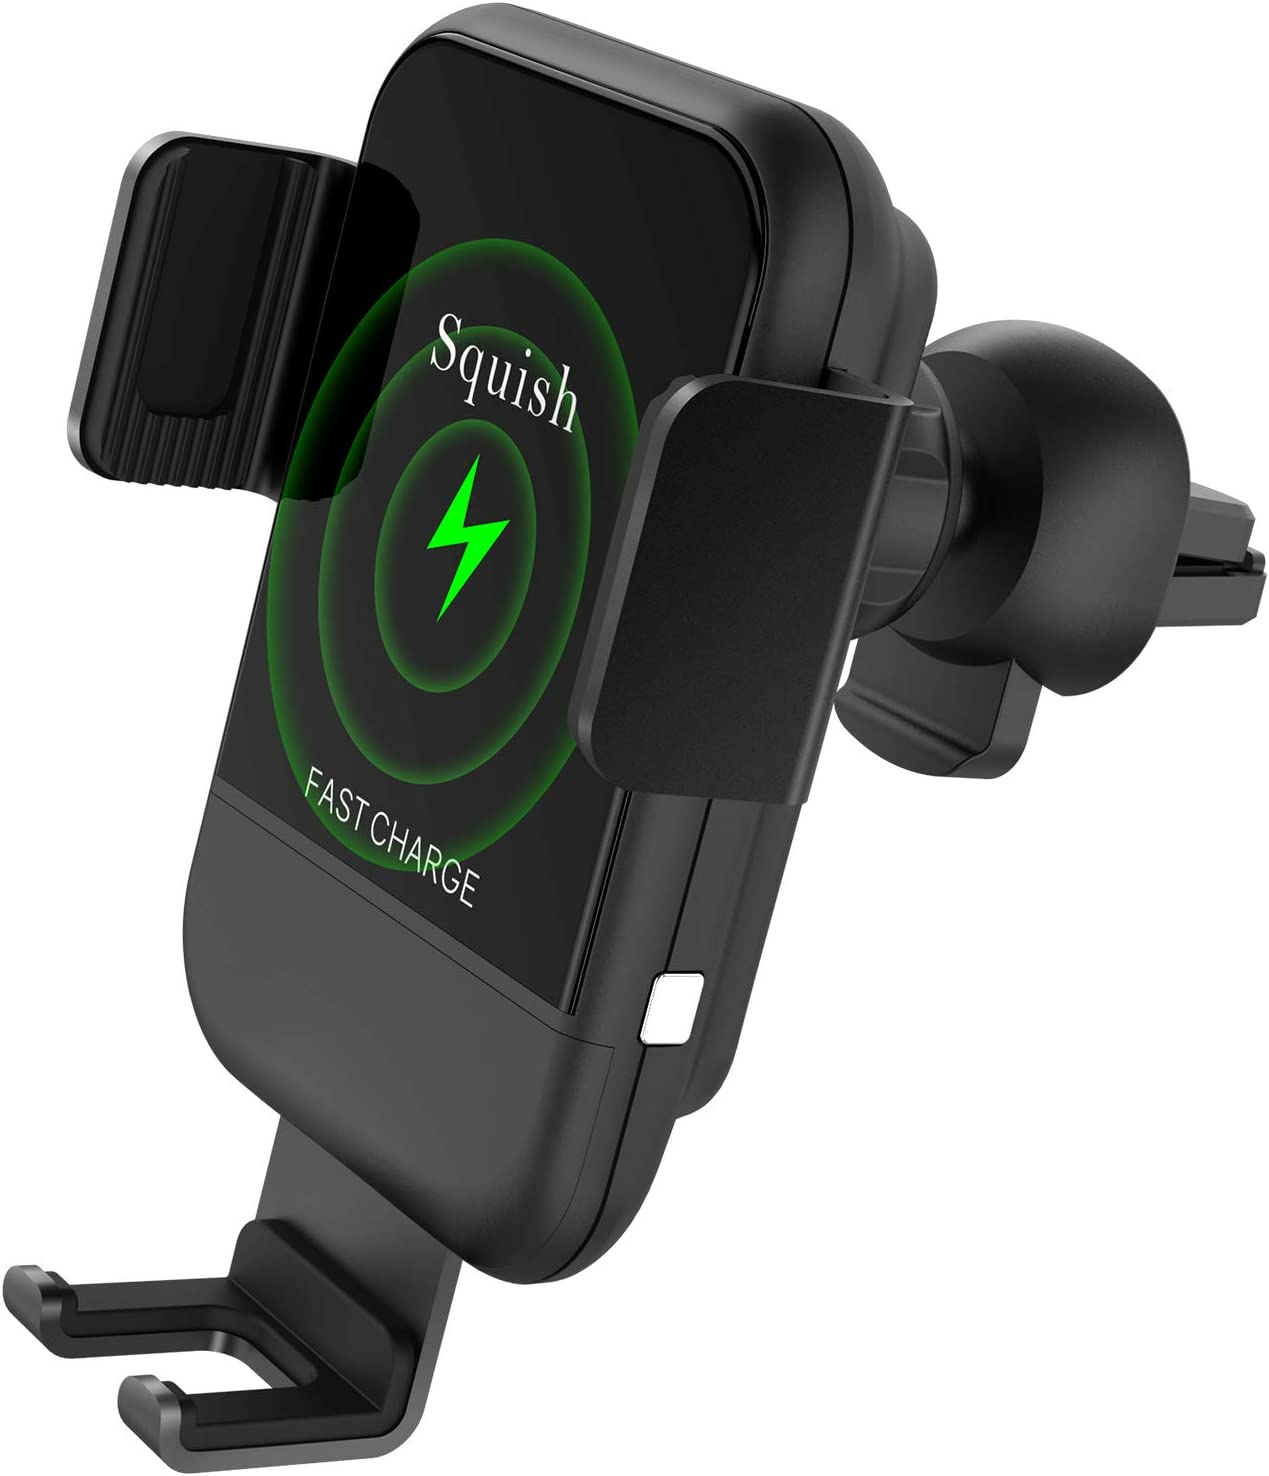 10W 7.5W Qi Fast Wireless Charger Car Phone Holder Automatic Car Charging Mount Compatible with iPhone Xs Max//XS//XR//X//8Plus//8 Samsung S10//S9//S9+//S8//S8+//Note9//Note8 Squish Wireless Car Charger Mount